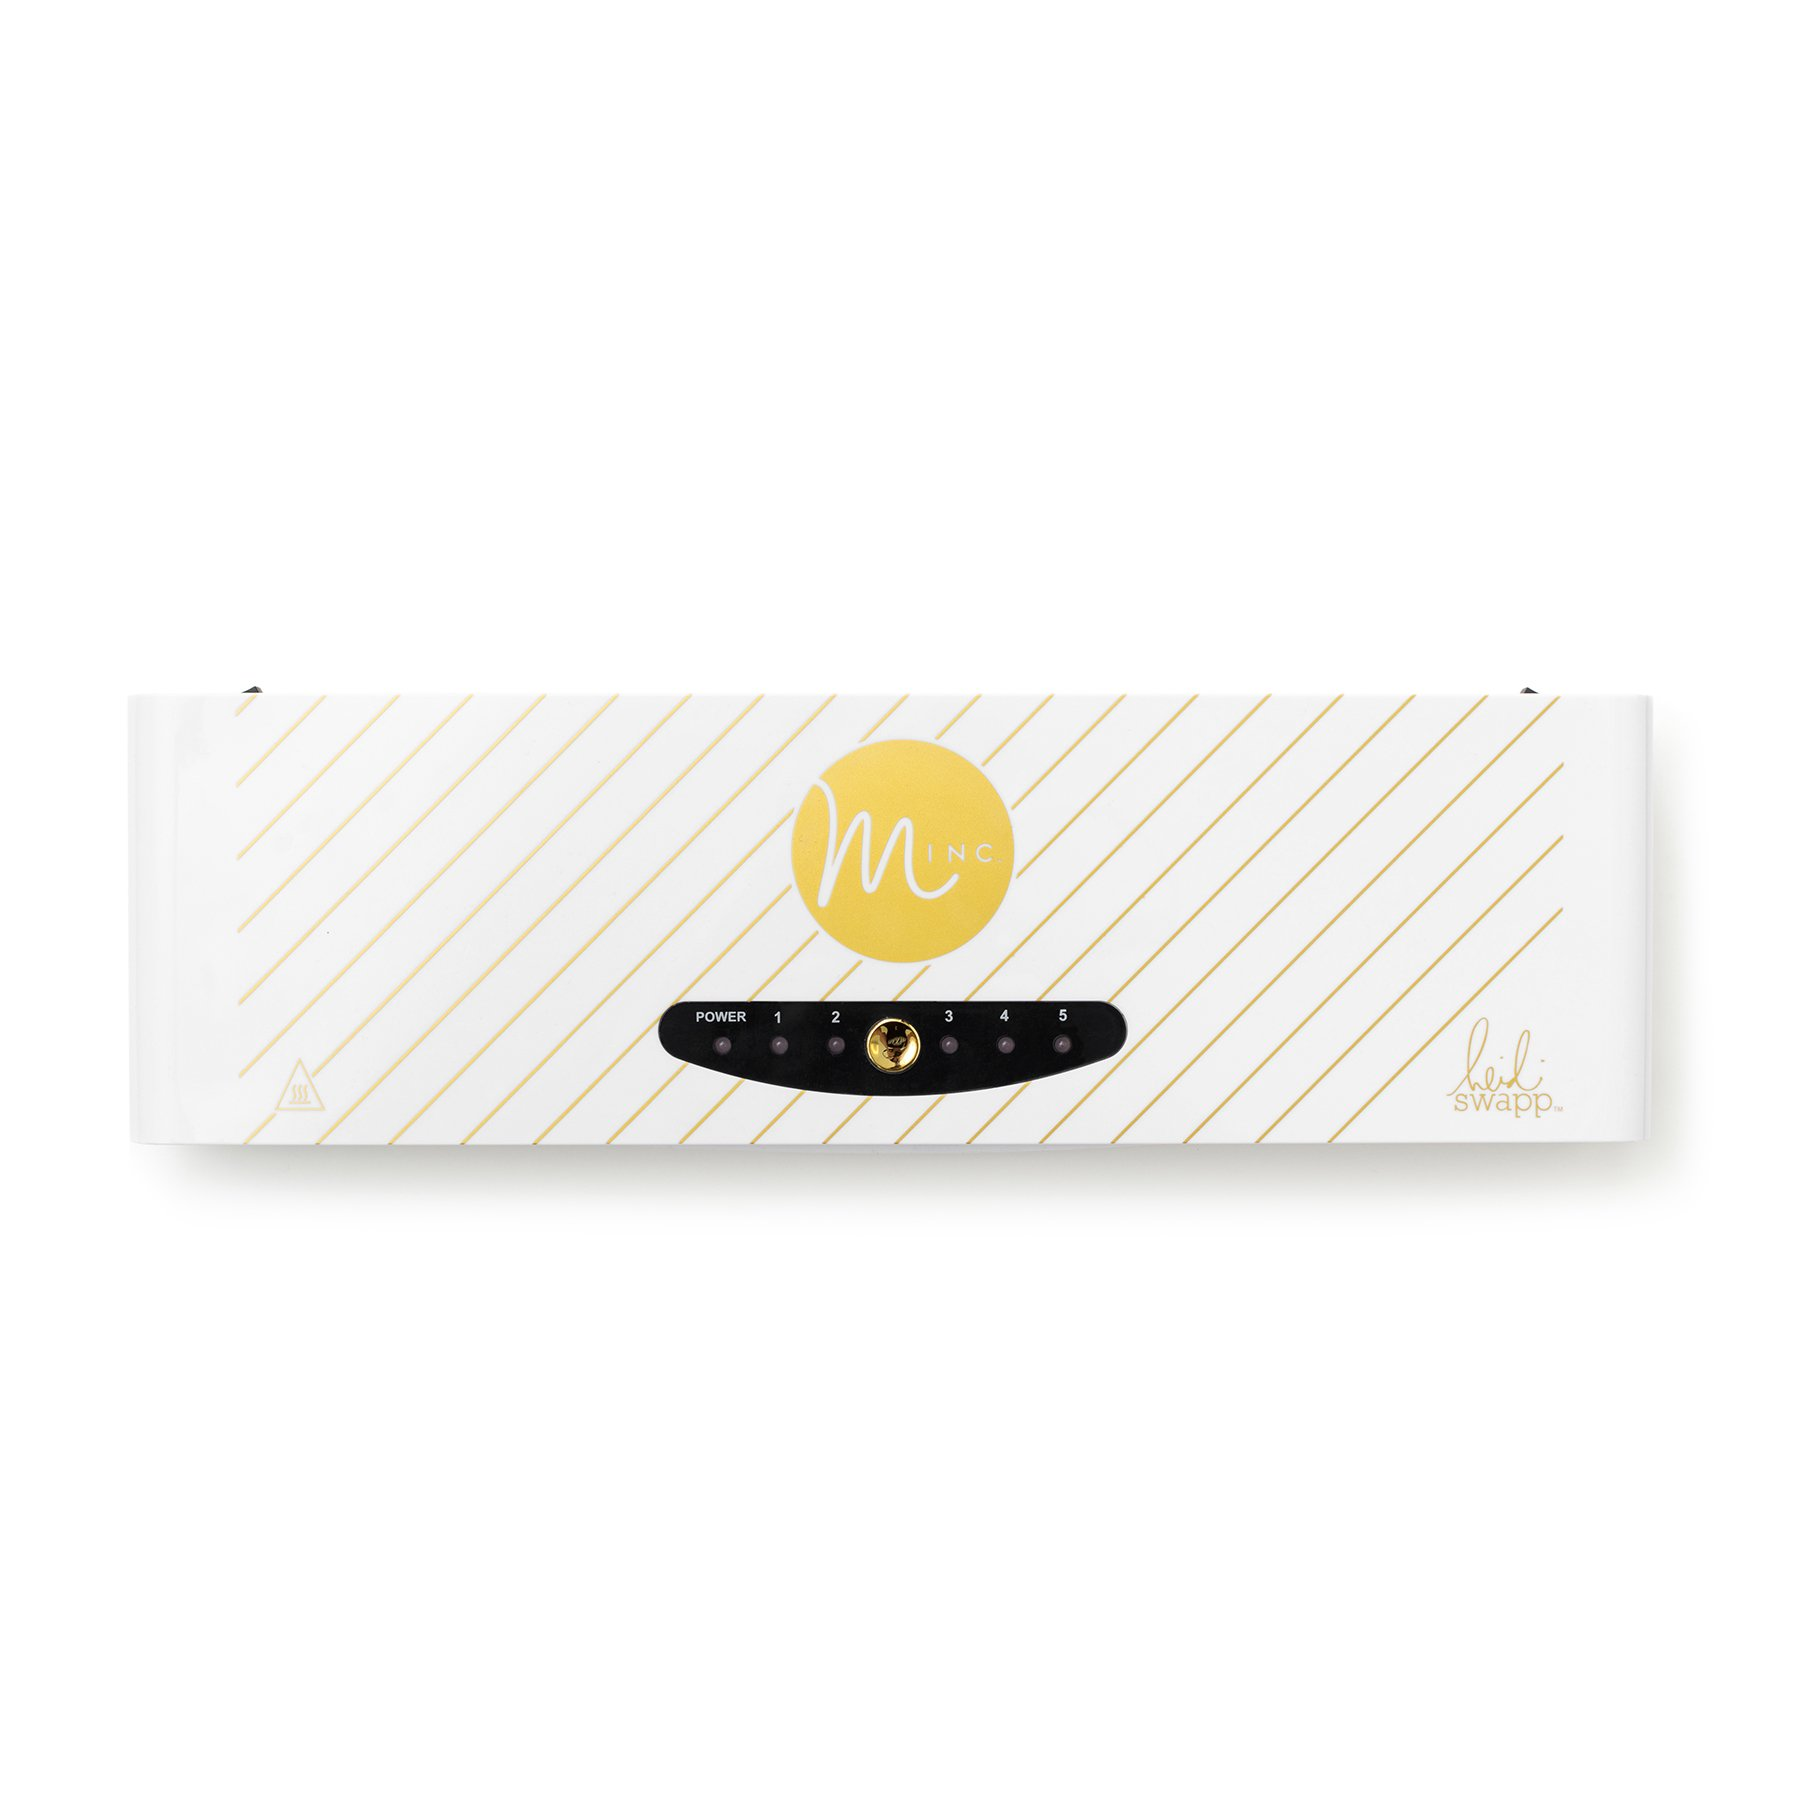 Minc Foil Application Machine Starter Kit by American Crafts | Includes machine, one transfer folder, one gold foil sheet, and three tags | US Version by American Crafts